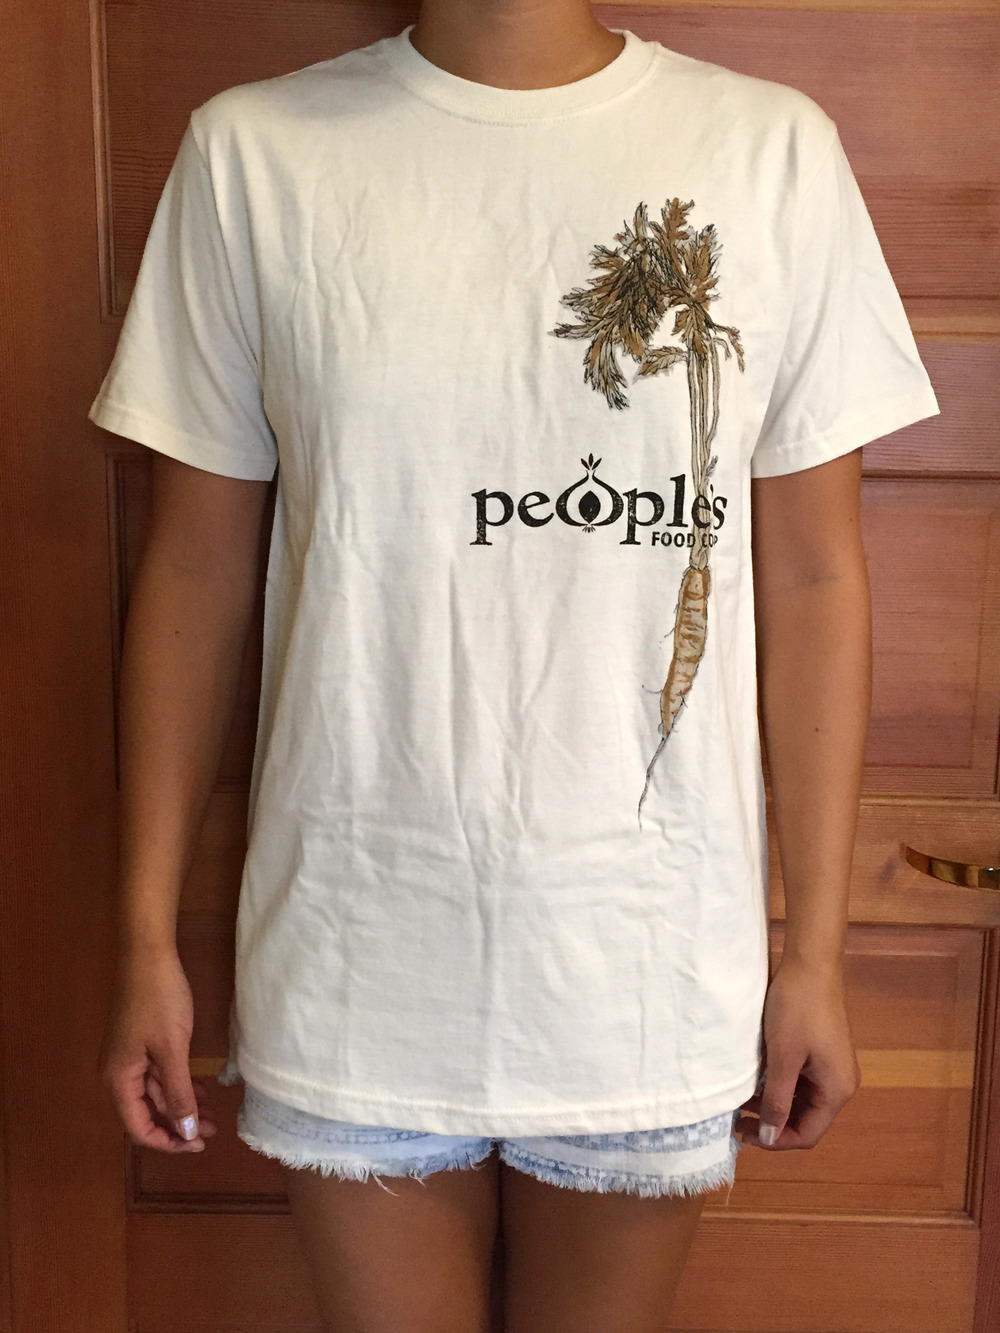 Want your design on the next People's tee?